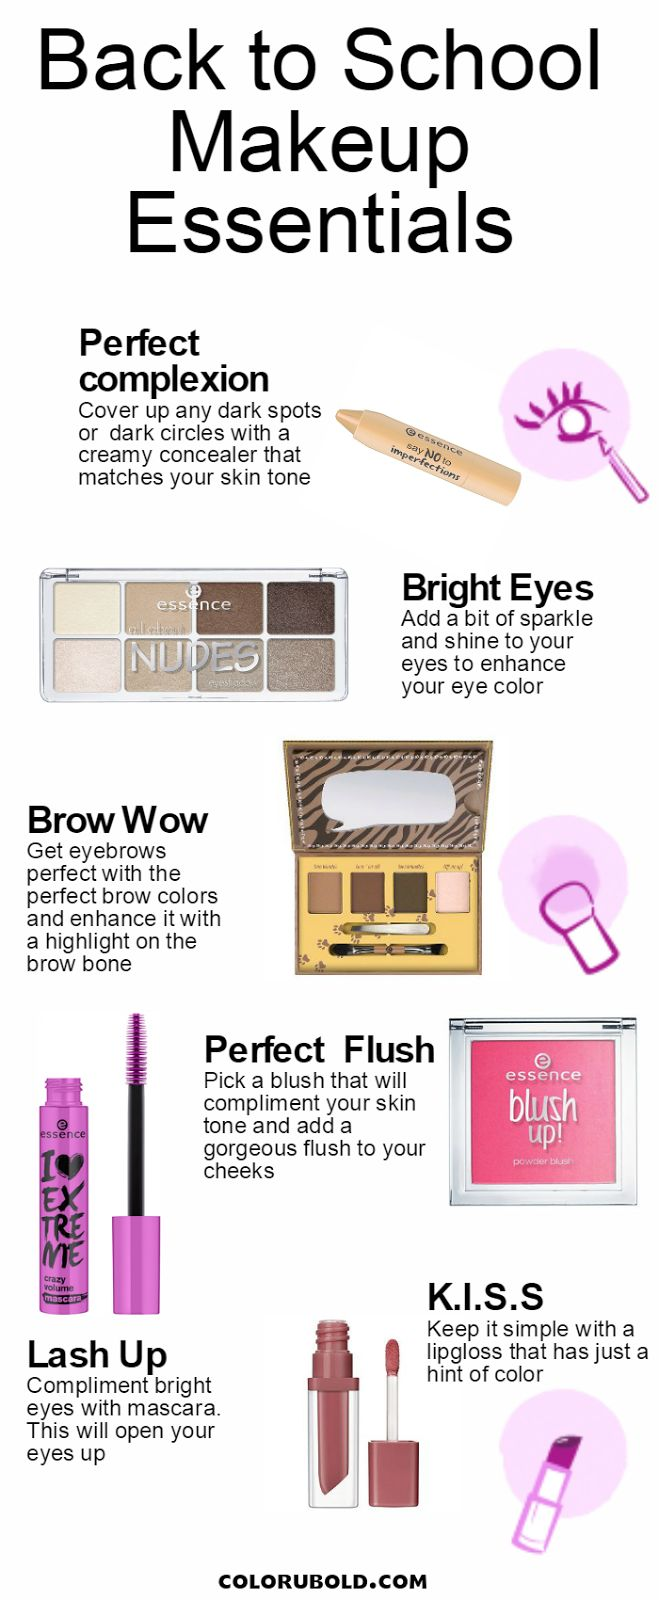 Affordable Back to School Makeup Essentials for teens and college students!